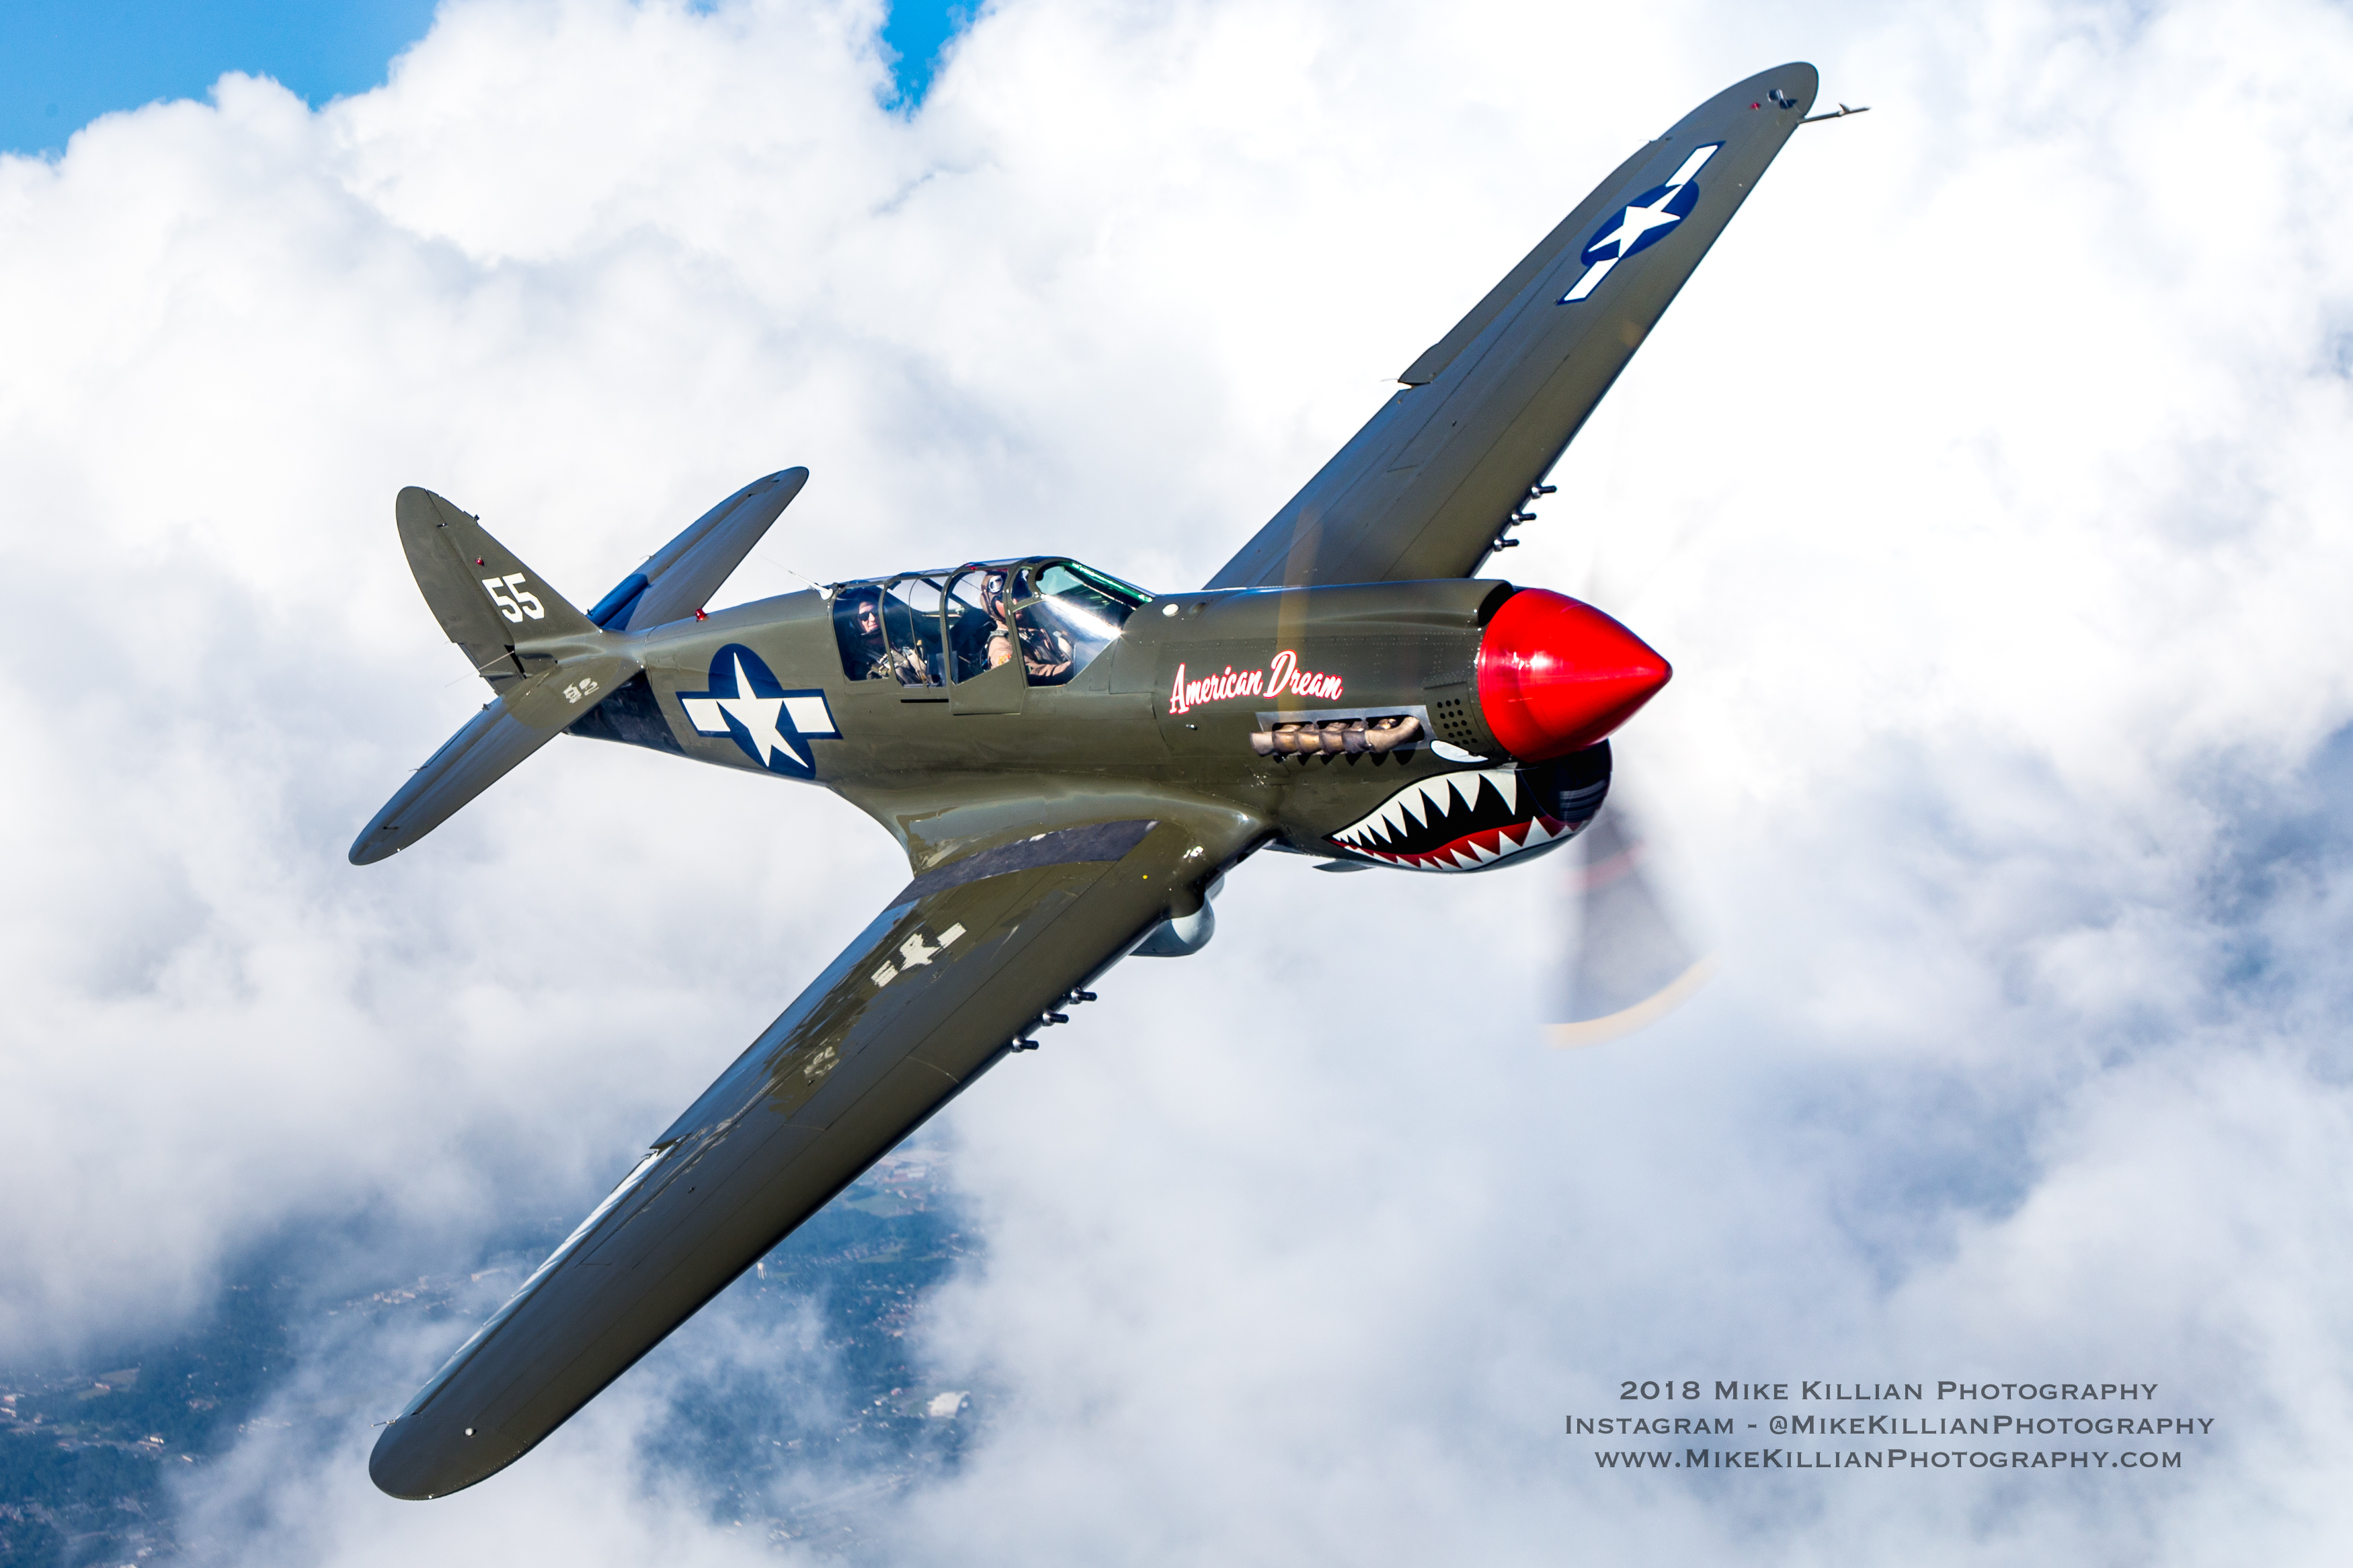 Now You Can Fly a P-40 Warhawk!